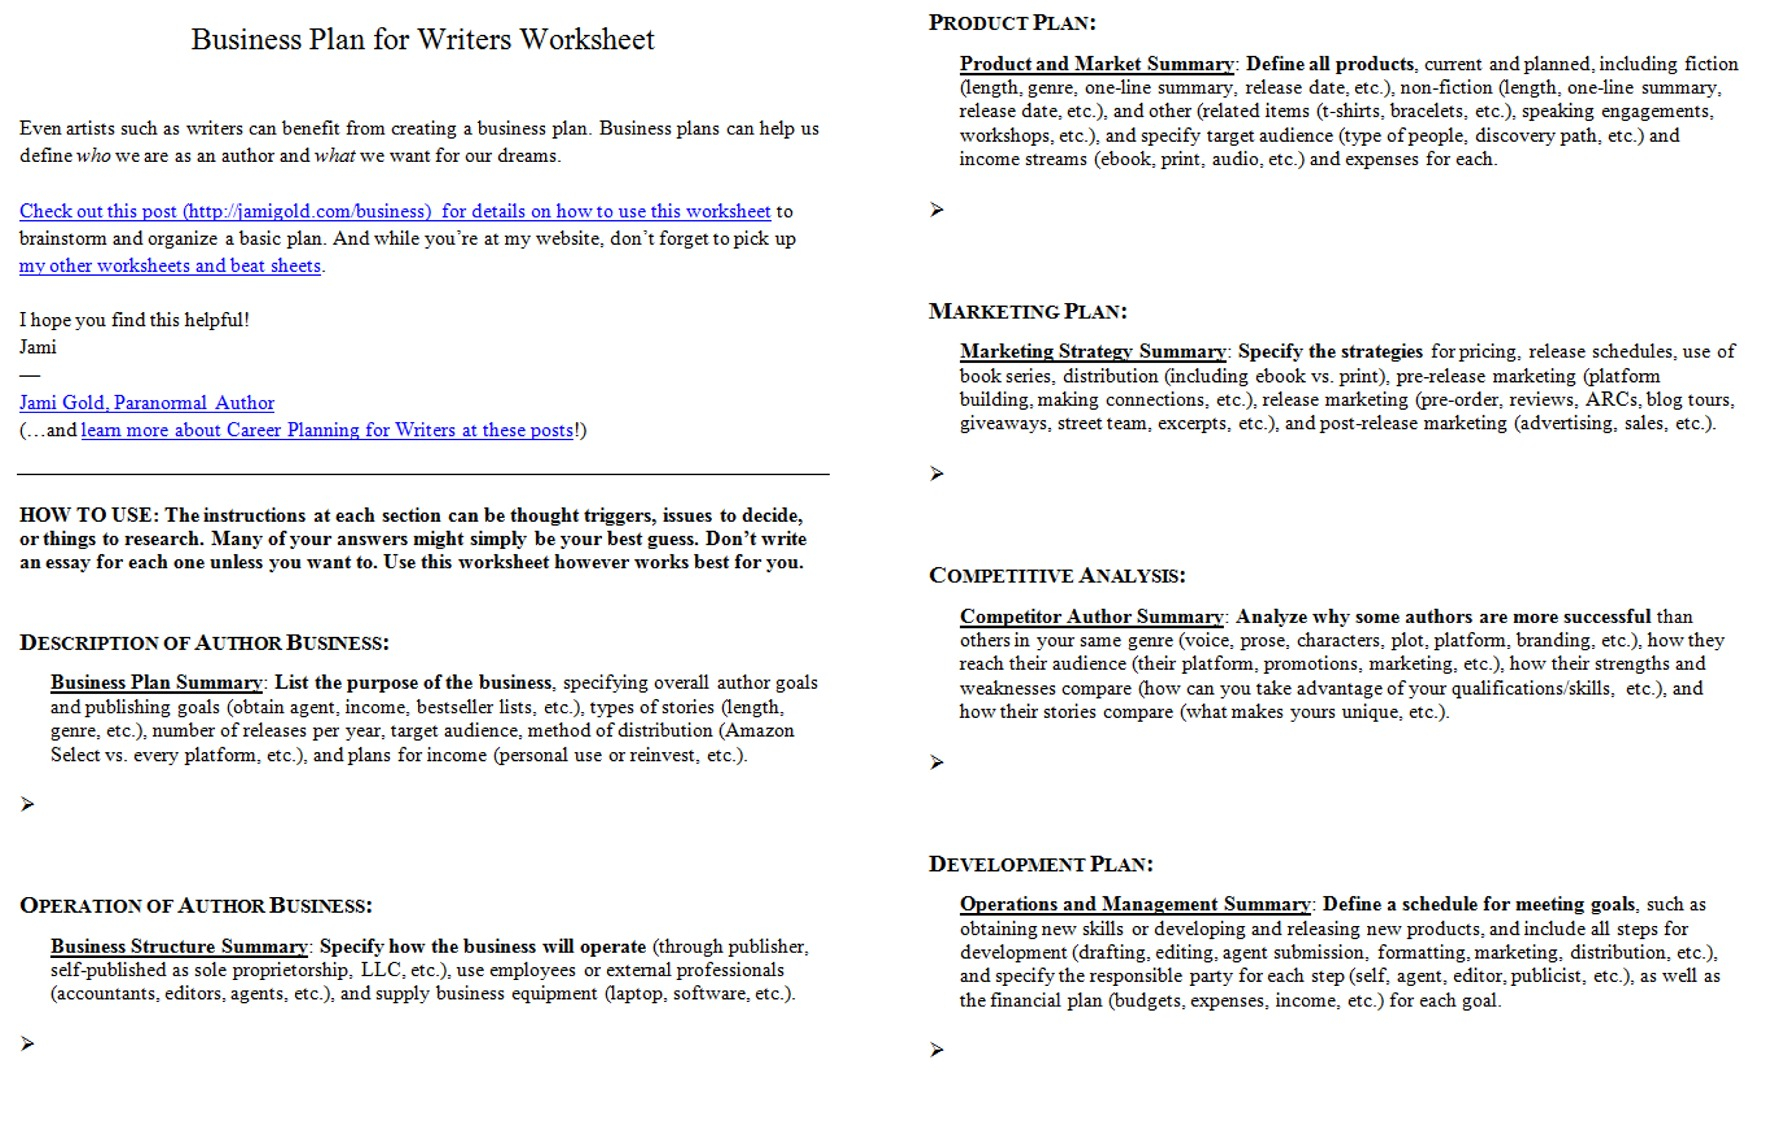 Aldiablosus  Mesmerizing Worksheets For Writers  Jami Gold Paranormal Author With Luxury Screen Shot Of Both Pages Of The Business Plan For Writers Worksheet With Charming  Digit Subtraction Worksheets Also Circumference And Area Worksheets In Addition Capital And Lowercase Letters Worksheet And Cultural Diversity Worksheet As Well As Label Water Cycle Worksheet Additionally Ratios And Proportions Worksheets Th Grade From Jamigoldcom With Aldiablosus  Luxury Worksheets For Writers  Jami Gold Paranormal Author With Charming Screen Shot Of Both Pages Of The Business Plan For Writers Worksheet And Mesmerizing  Digit Subtraction Worksheets Also Circumference And Area Worksheets In Addition Capital And Lowercase Letters Worksheet From Jamigoldcom